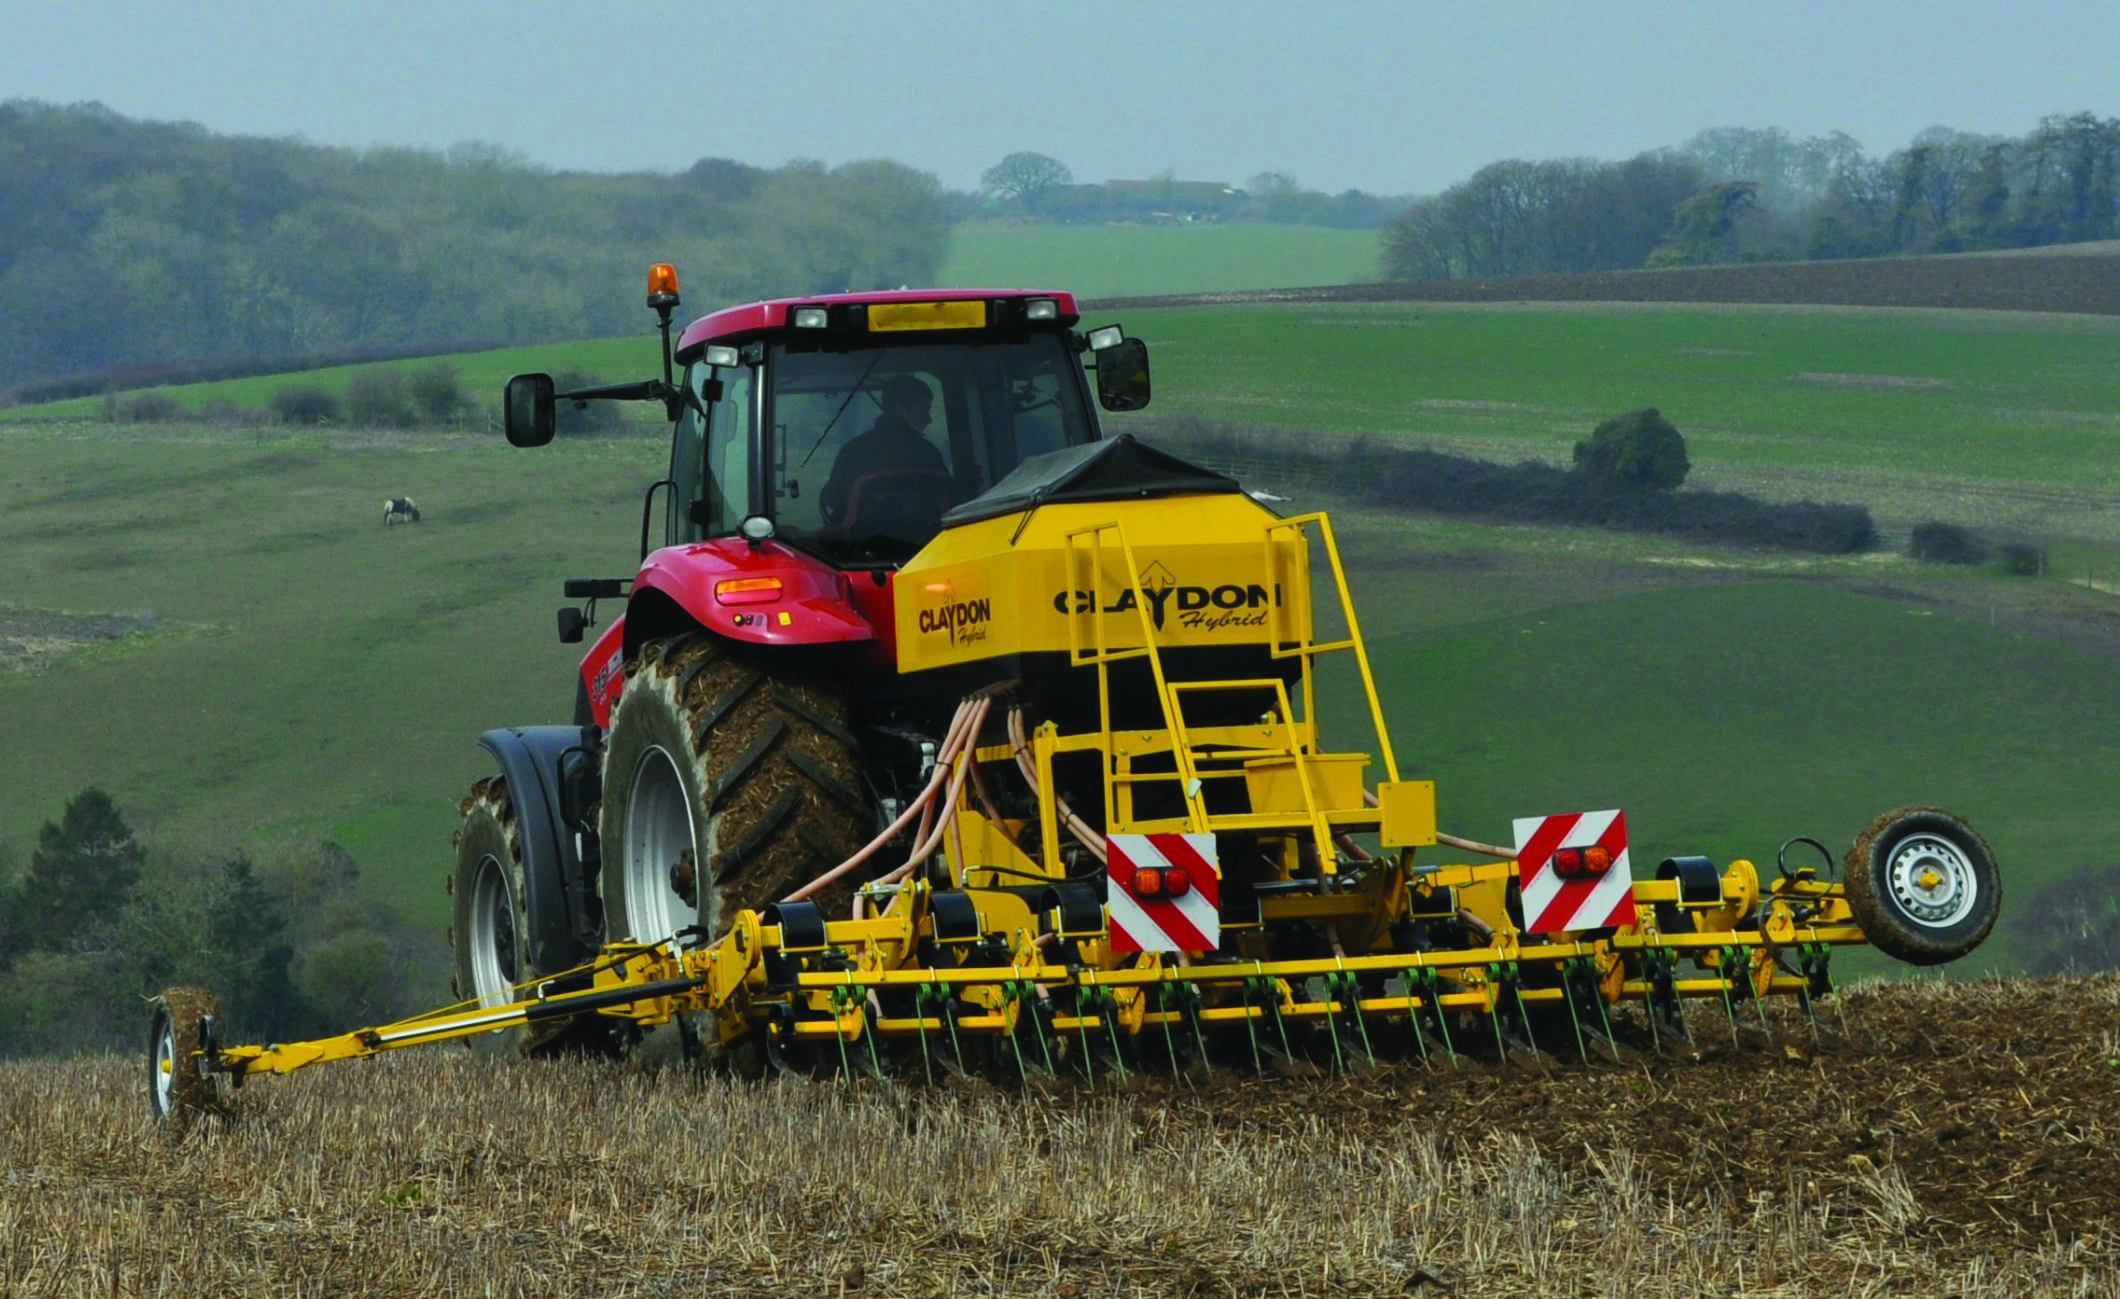 Claydon 3m Hybrid with Case IH tractor